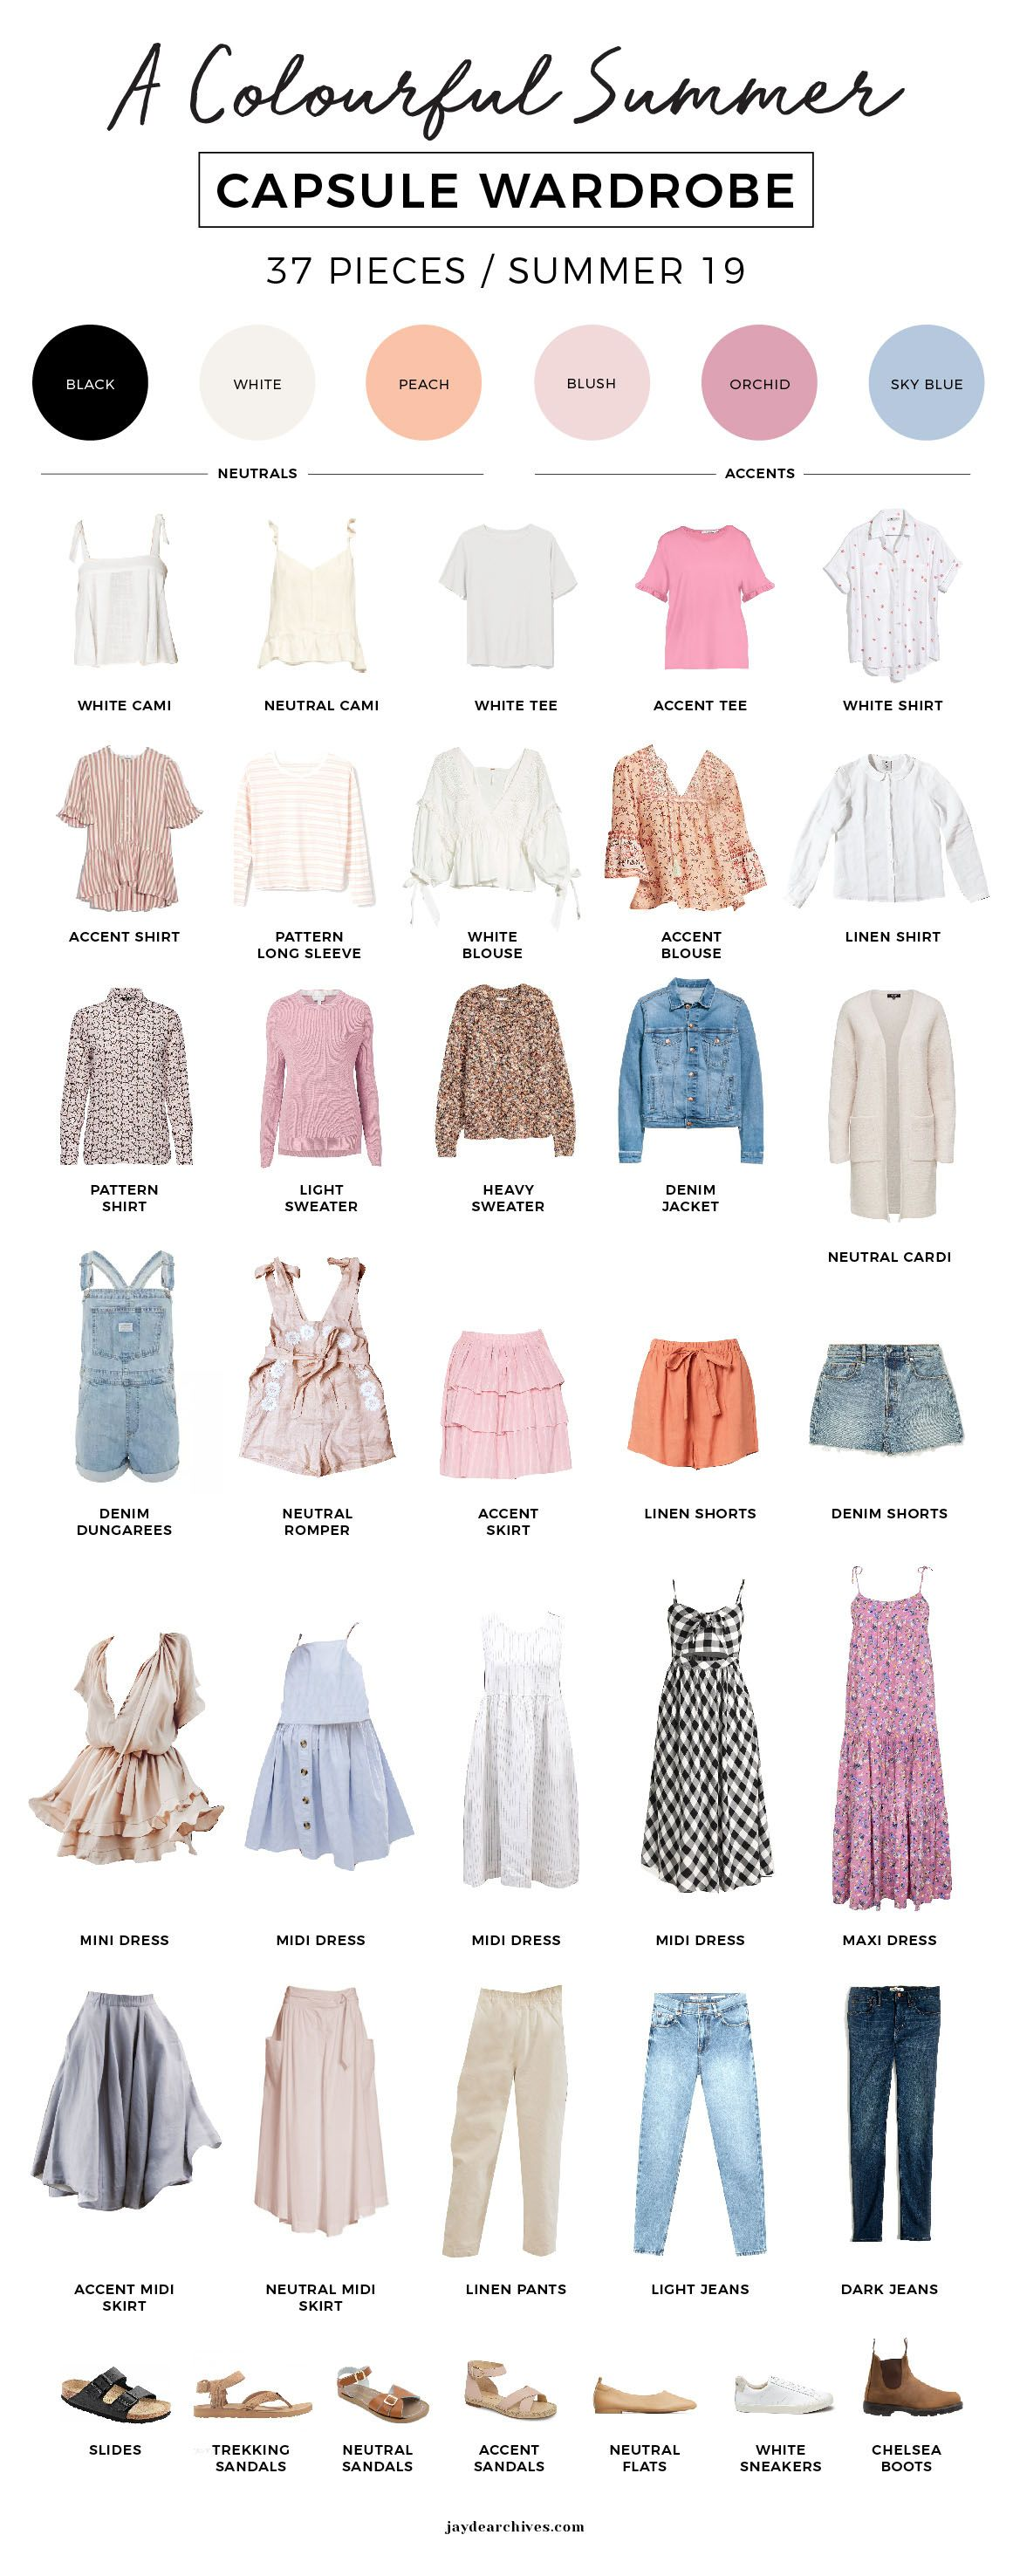 My Colourful Summer Capsule Wardrobe | Jayde Archives